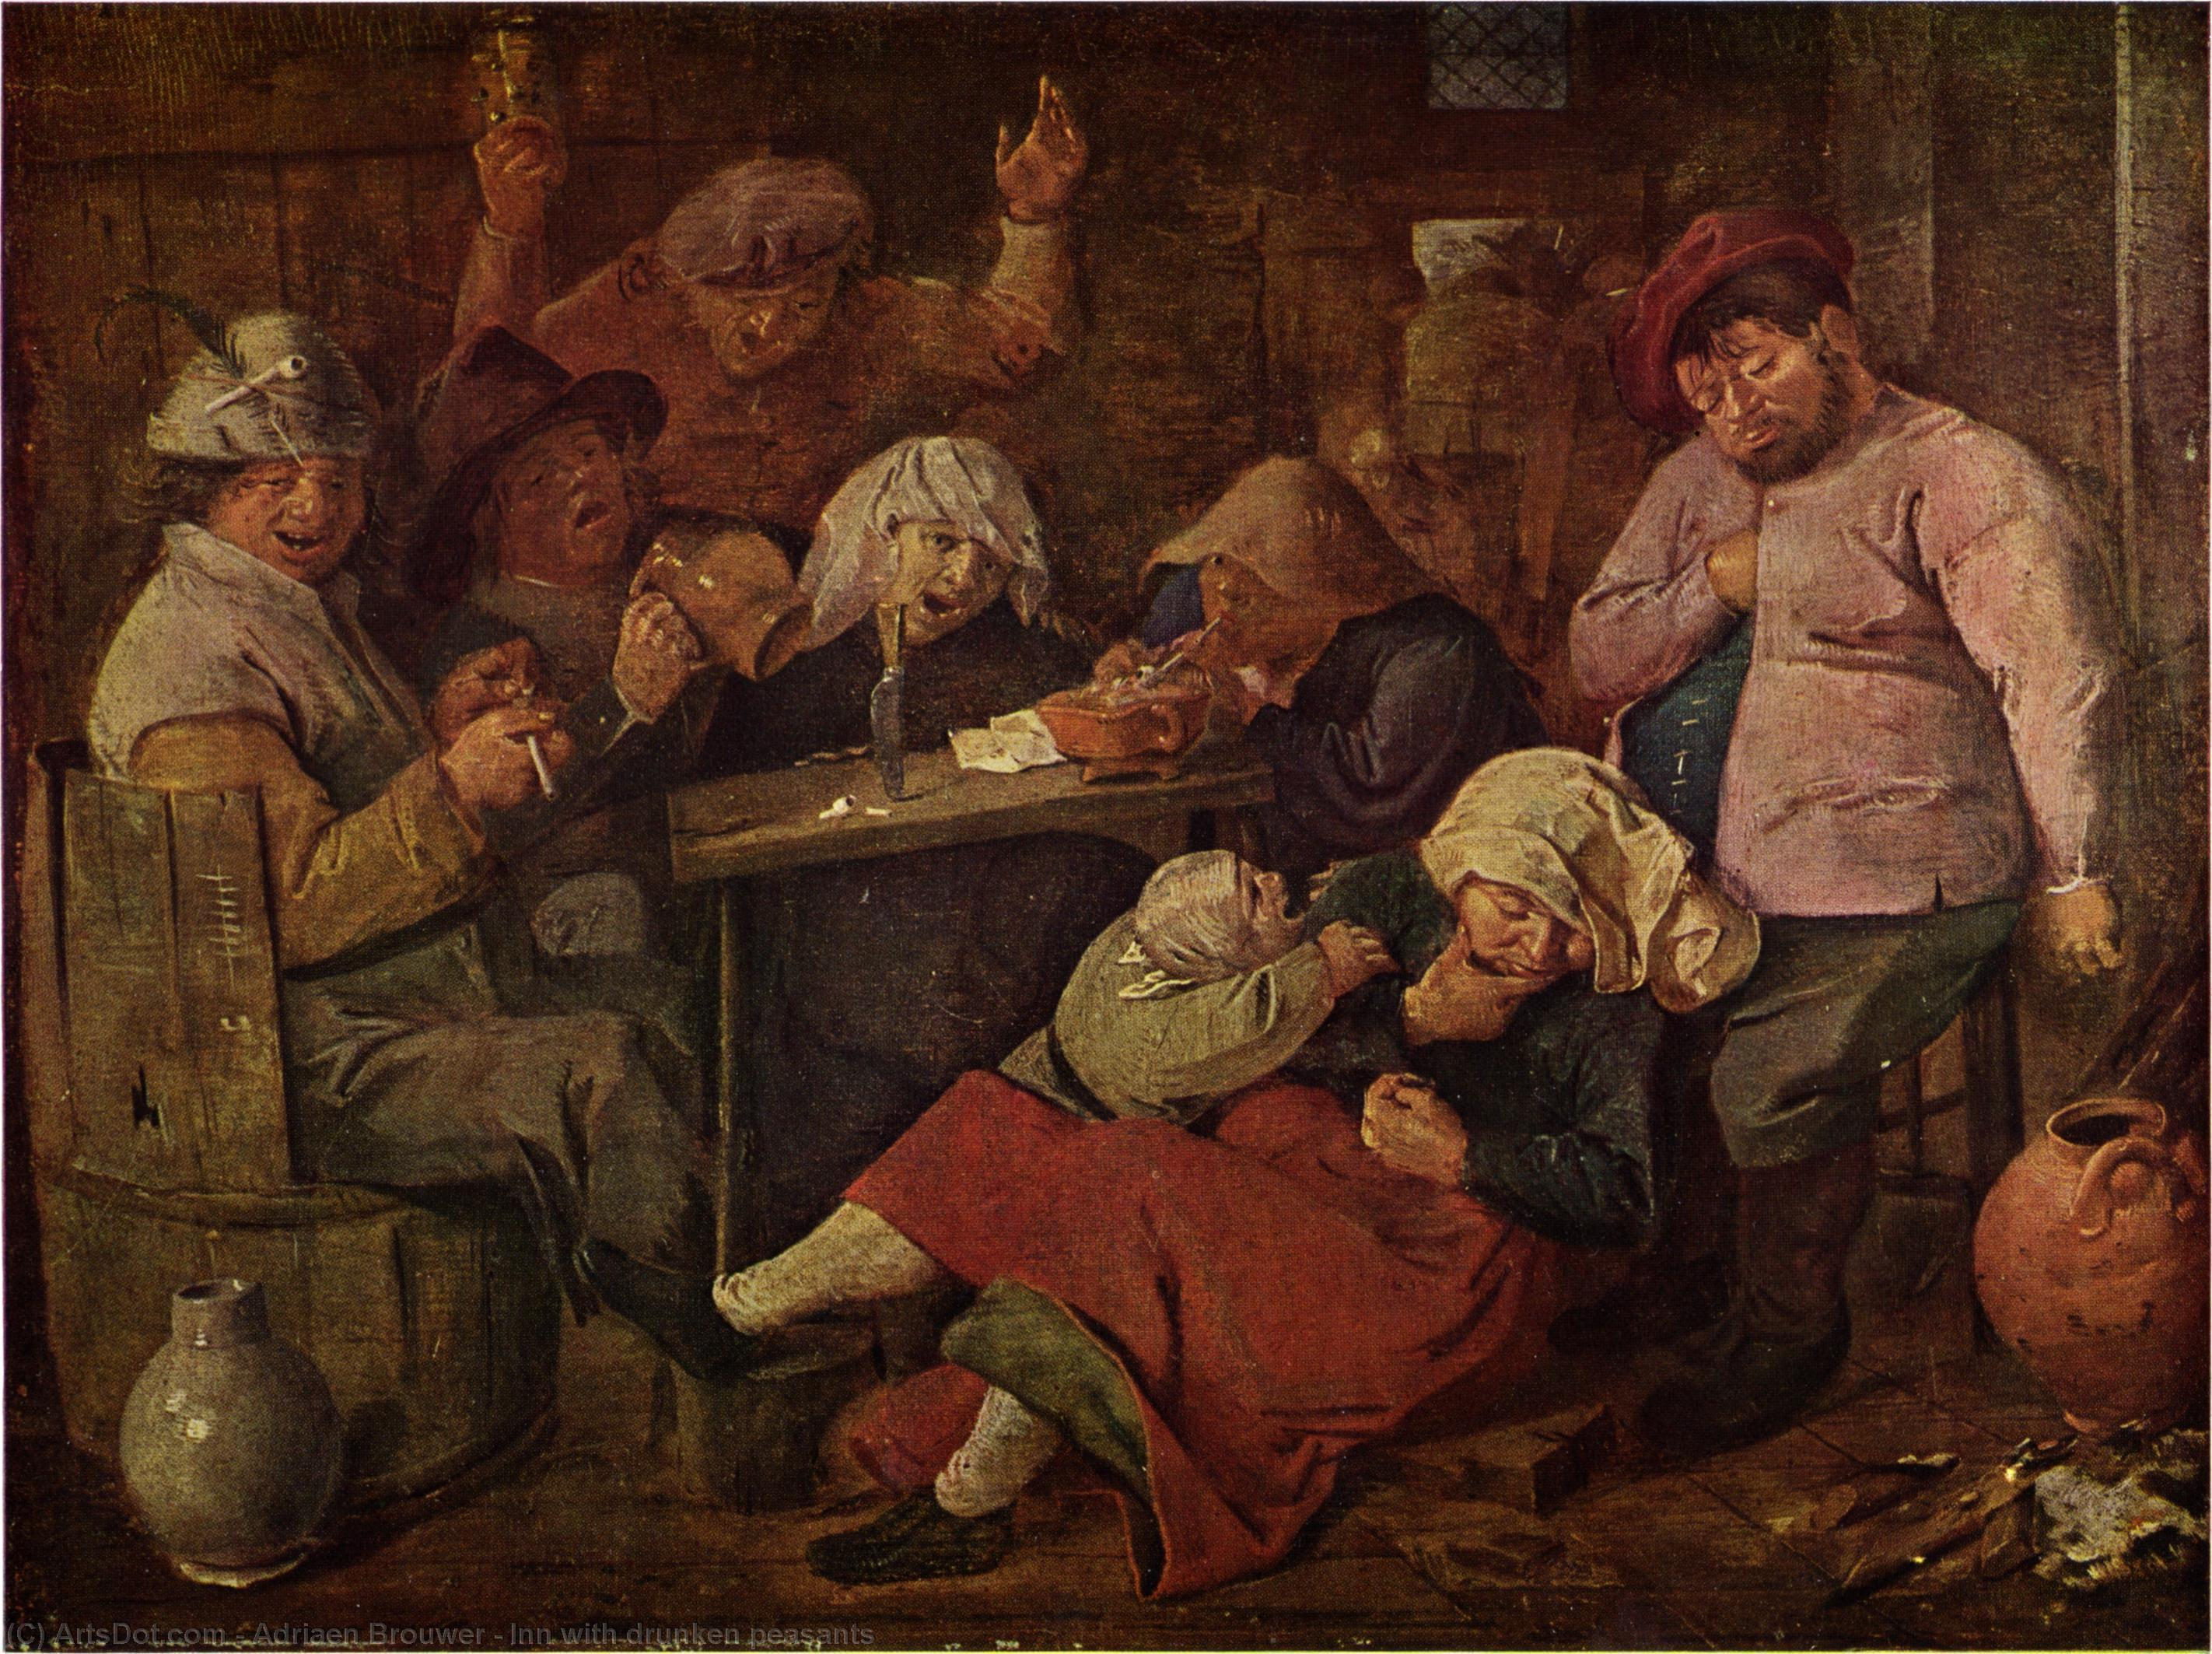 Wikioo.org - The Encyclopedia of Fine Arts - Painting, Artwork by Adriaen Brouwer - Inn with drunken peasants